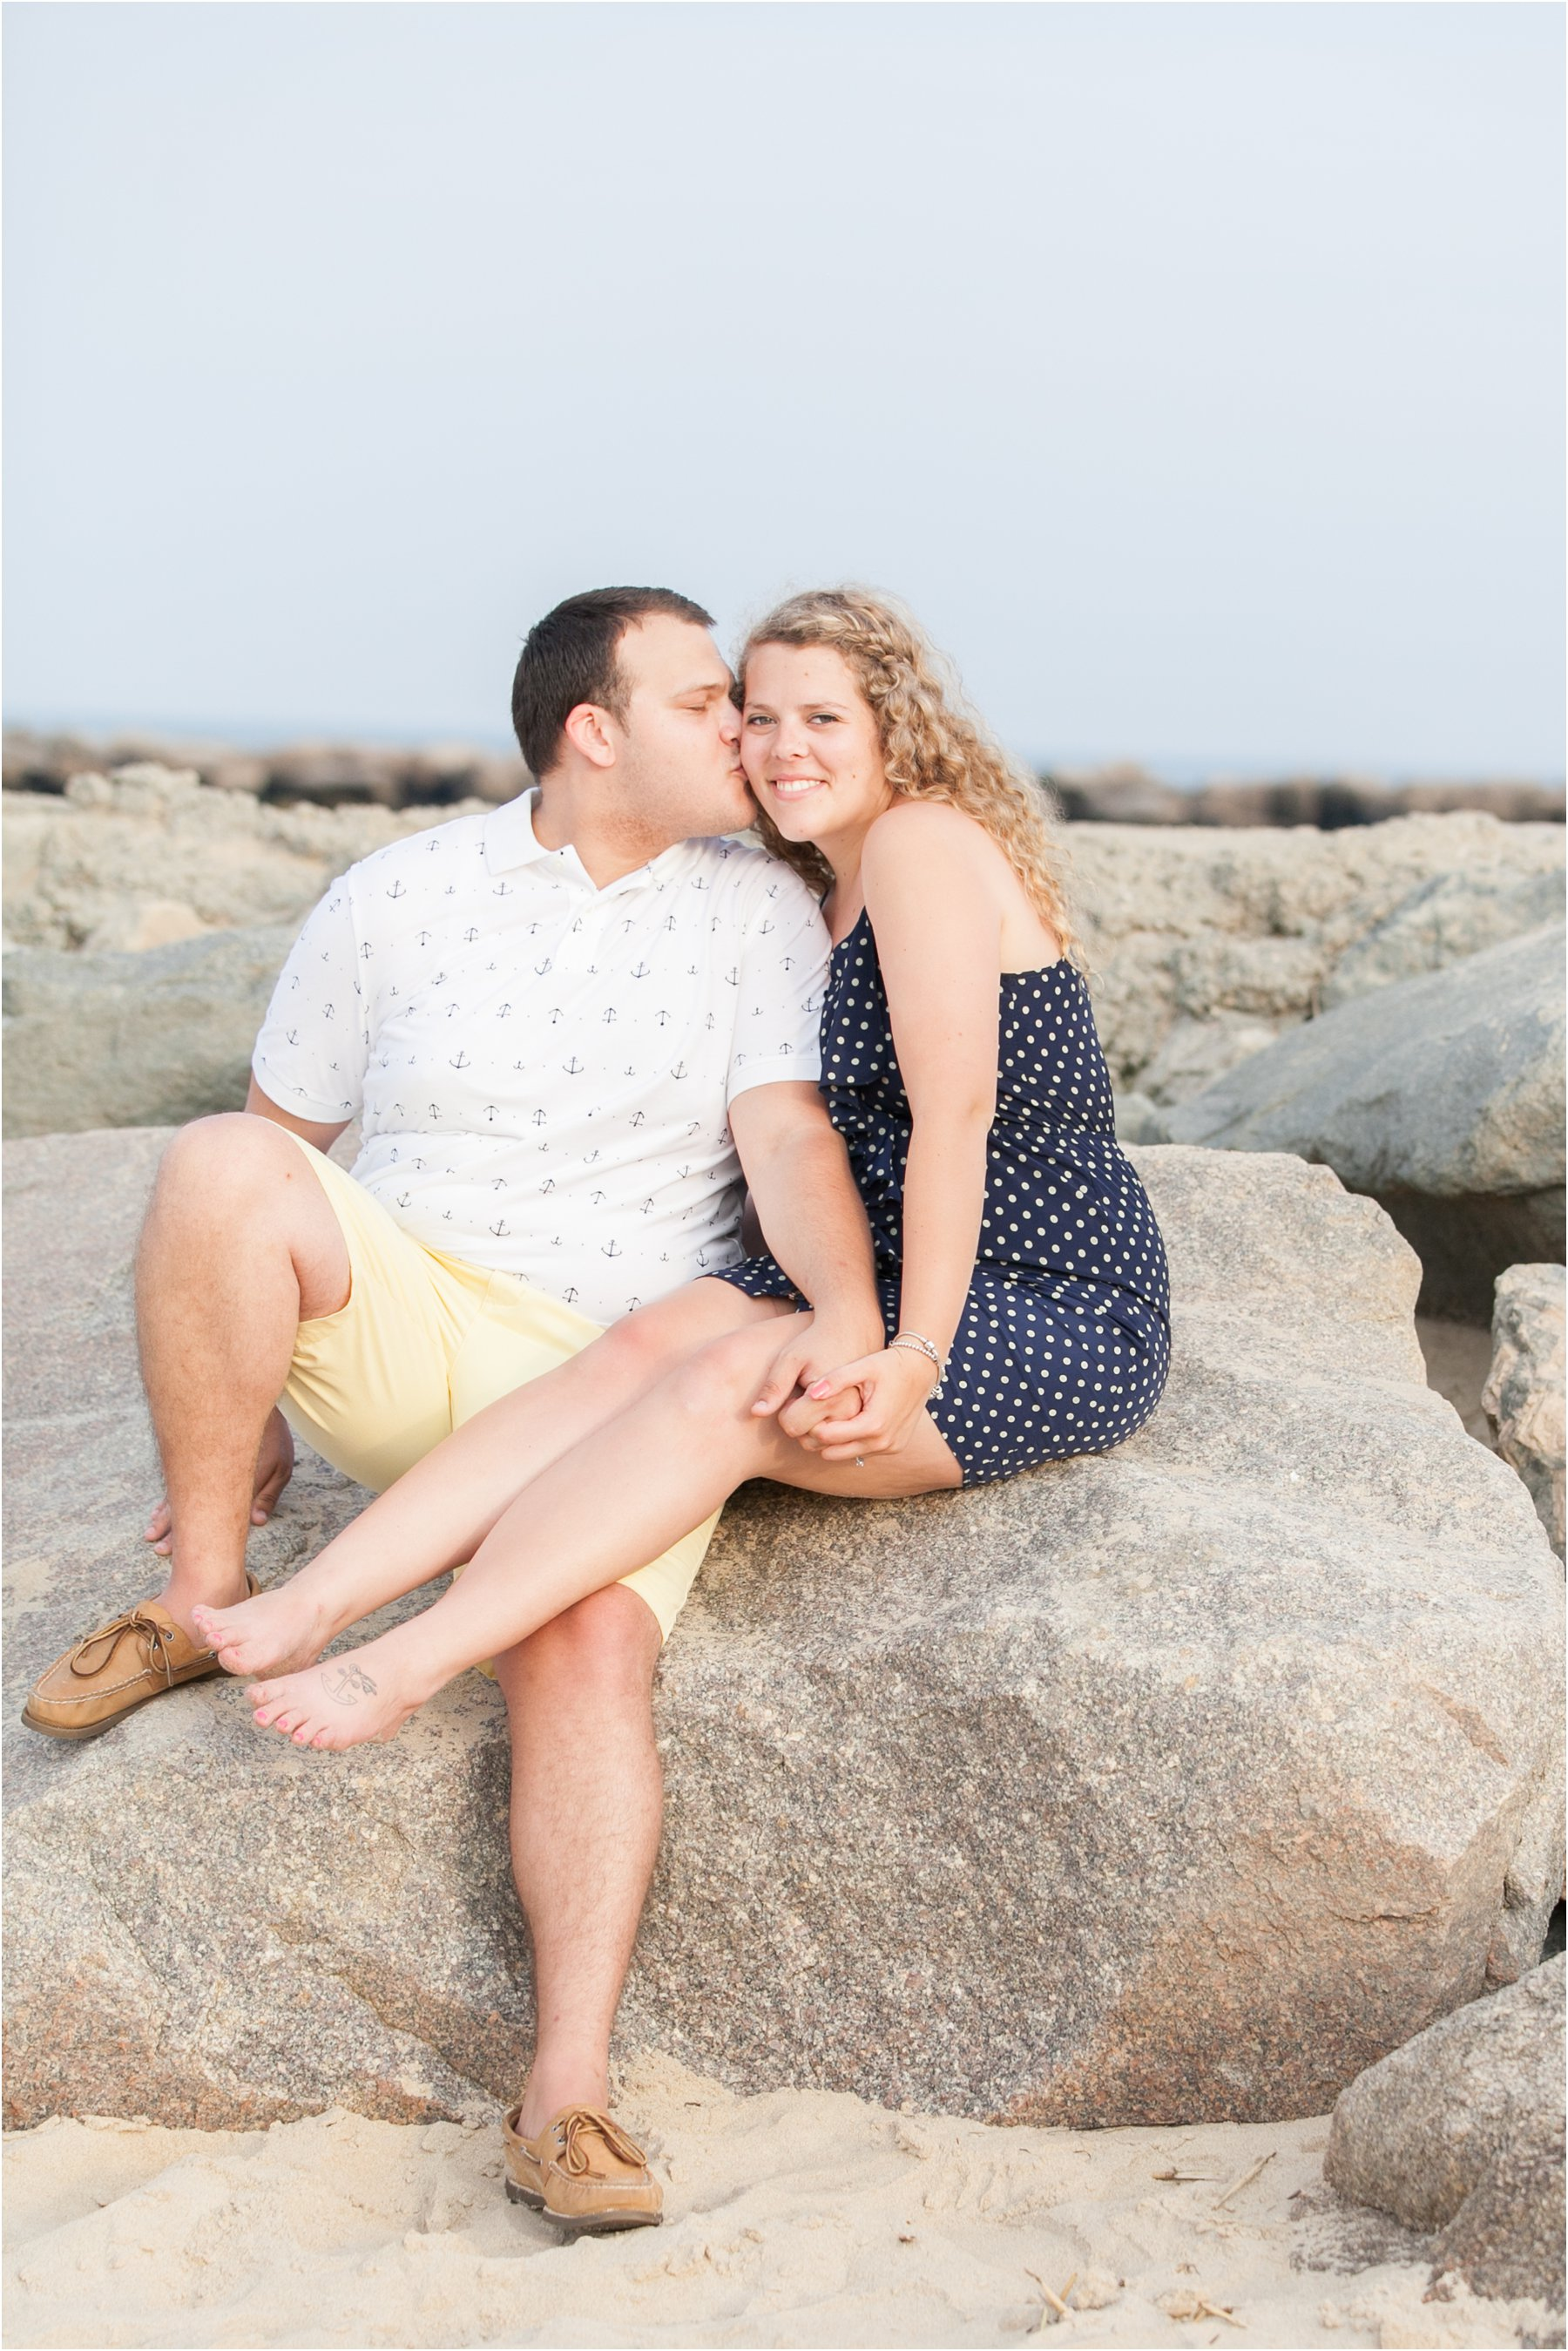 engagement_beach_Photography_Jessica_Ryan_Photography_virginia_virginia_beach_0304